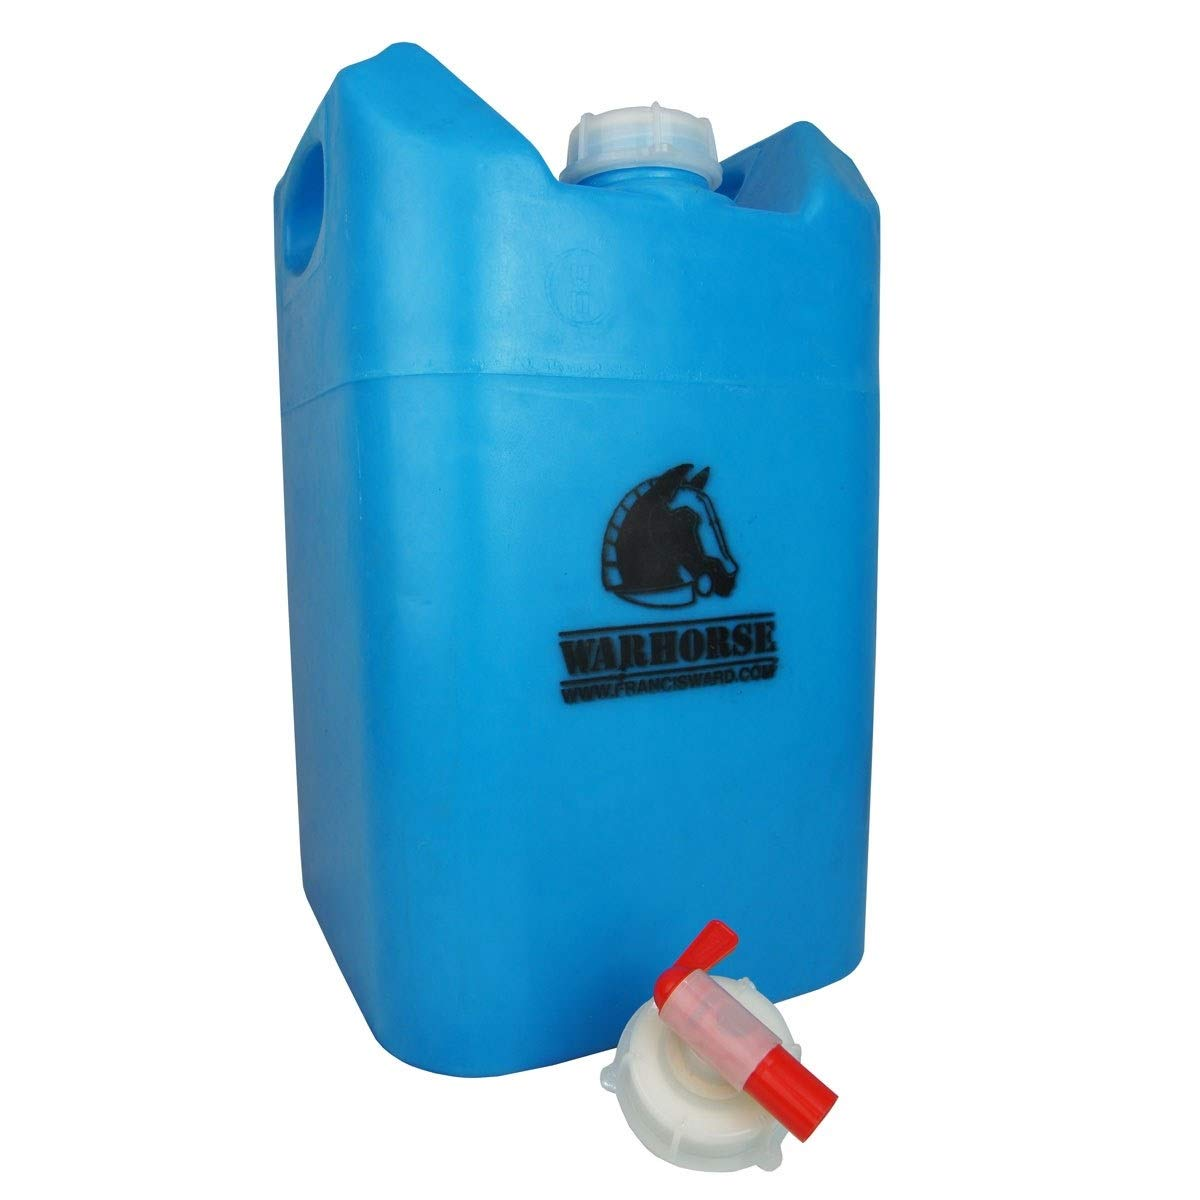 Francis Ward Warhorse & FOC Tap Water Carrier (7.9 gallons) (Blue)